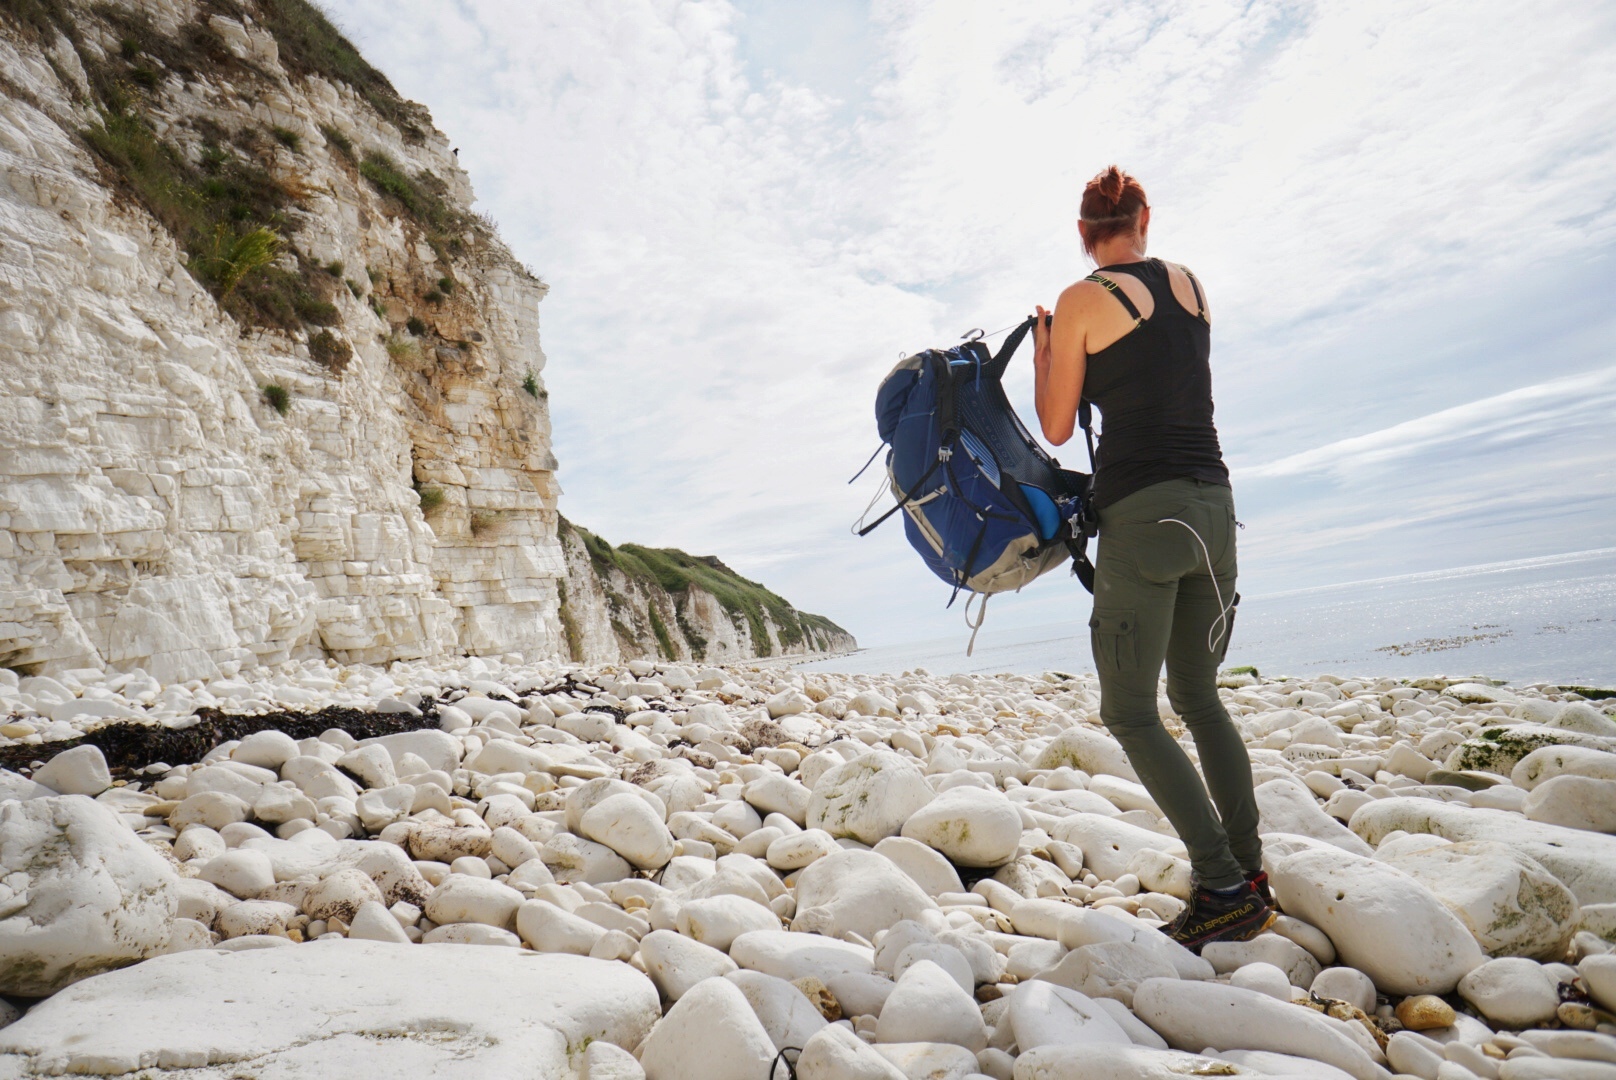 Setting off along beautiful Flamborough beaches where navigation is easy - keep the sea on your right